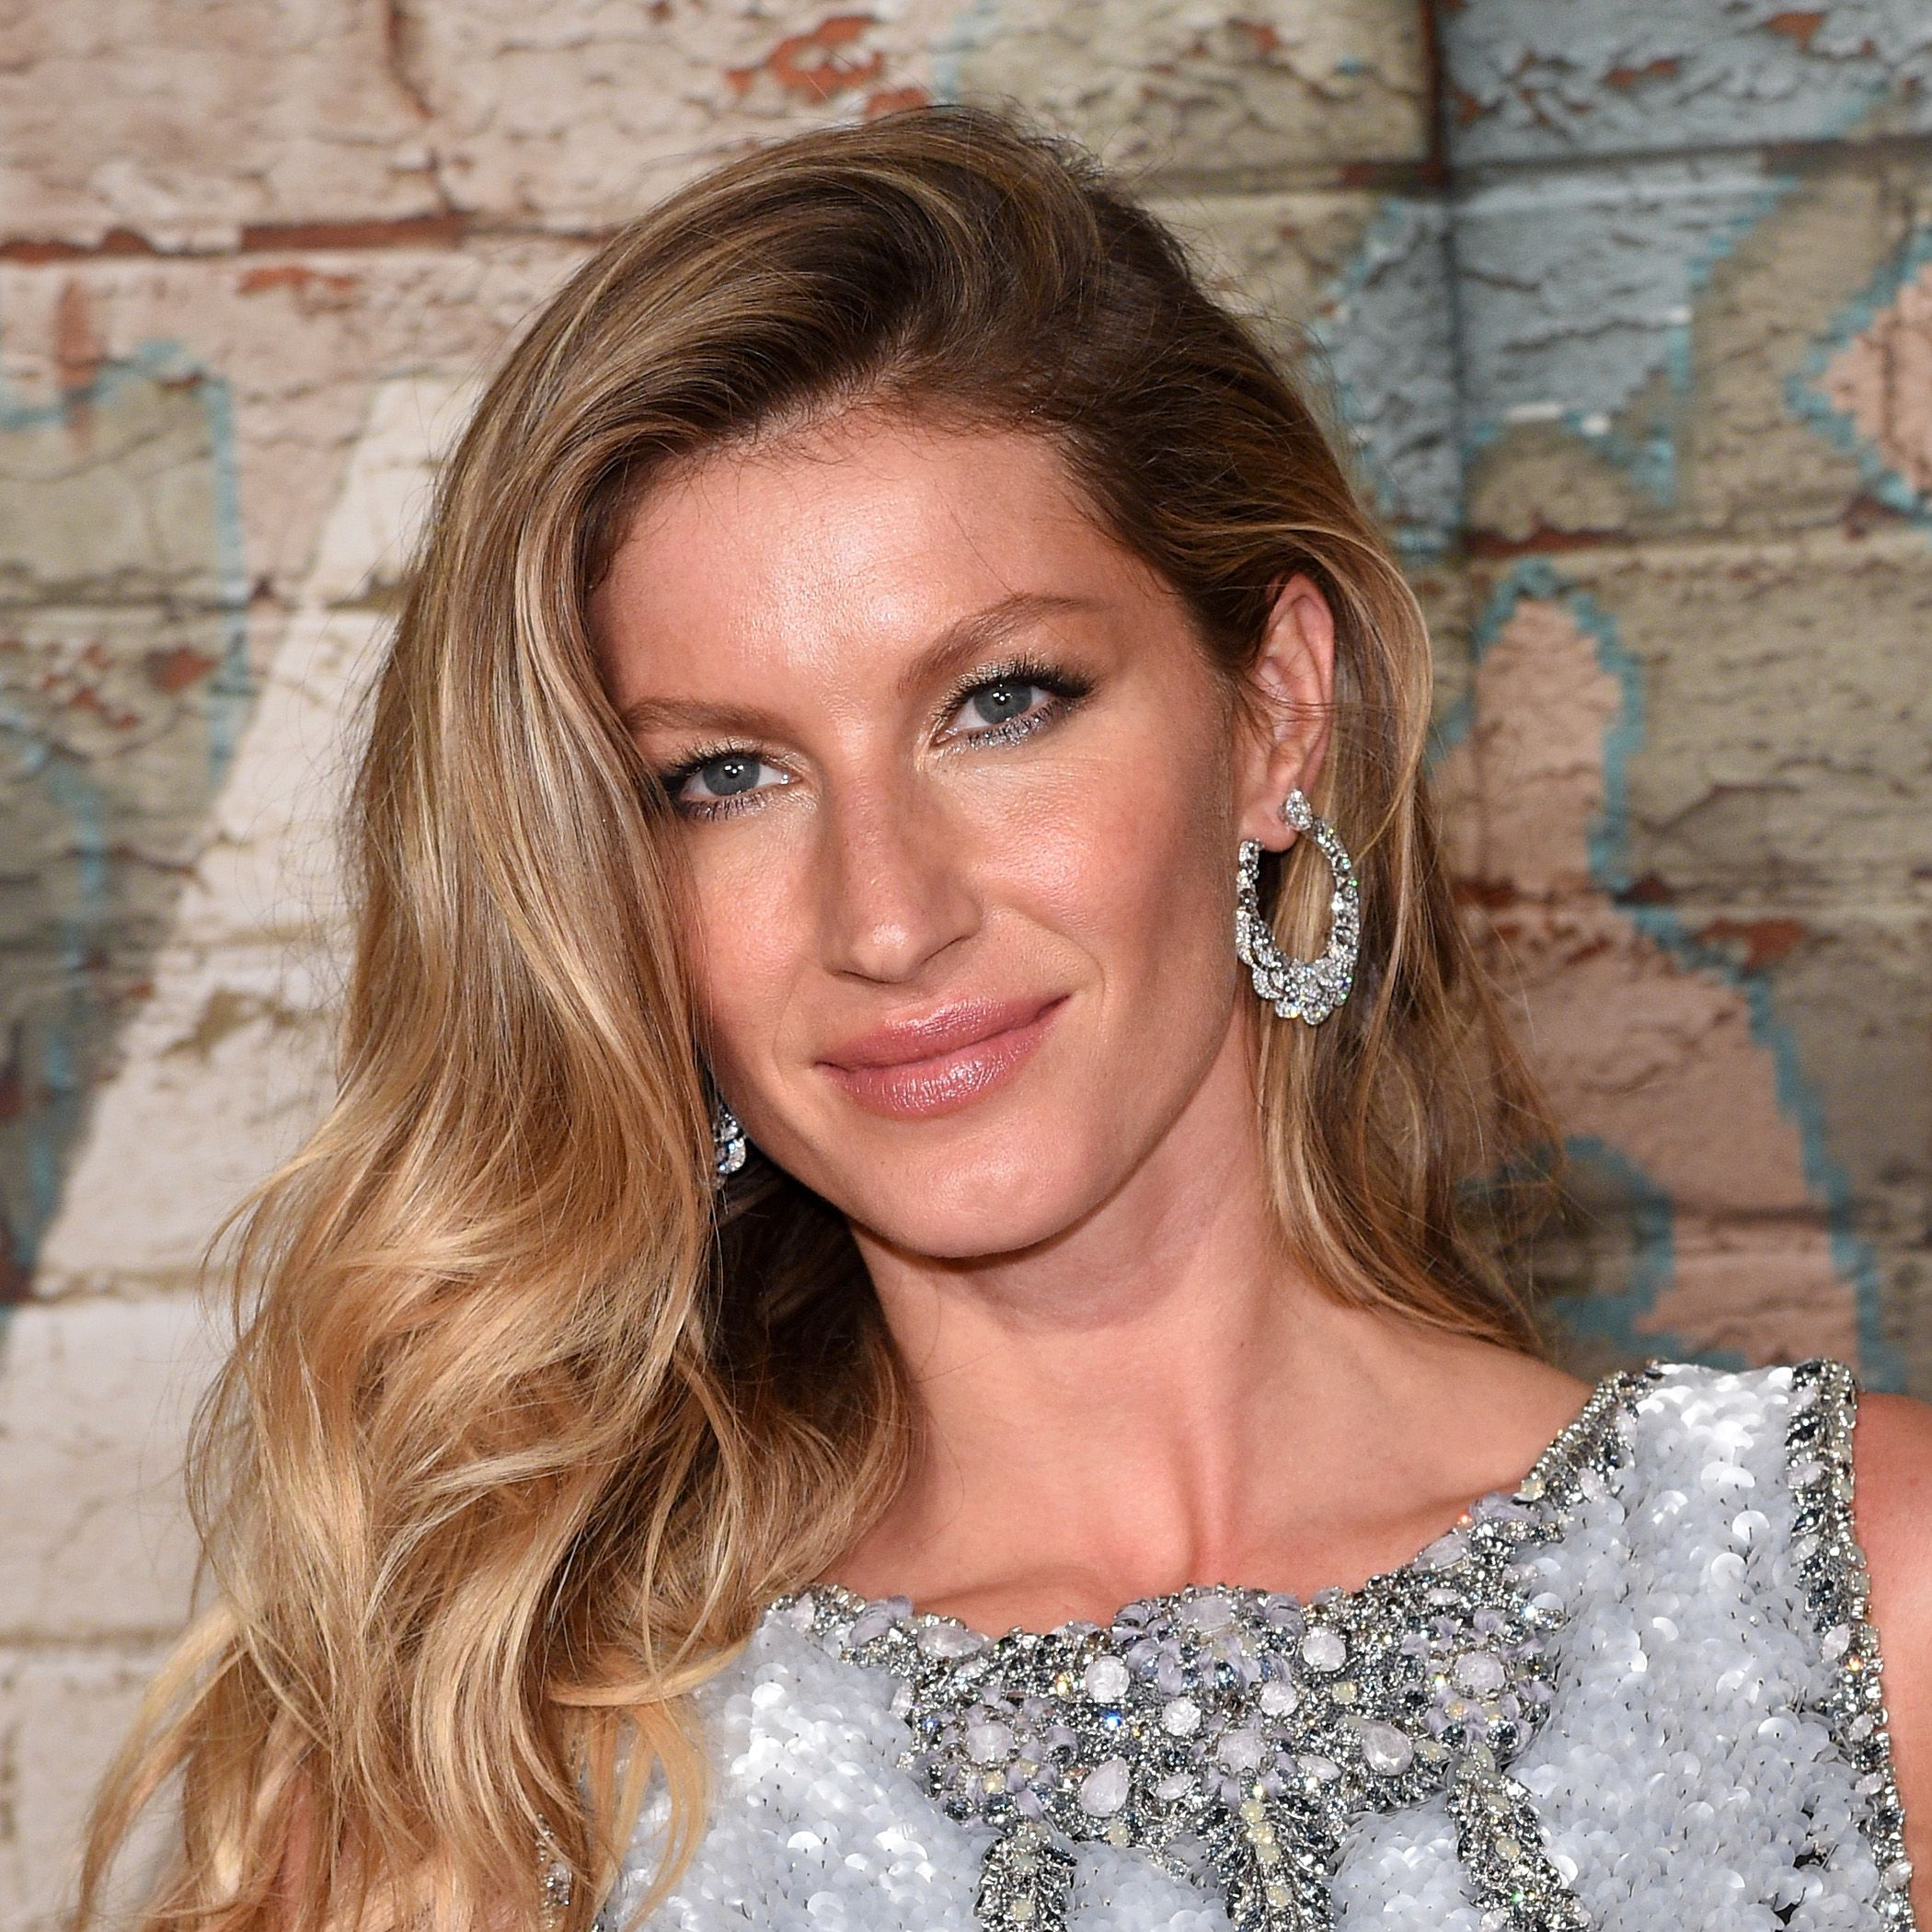 NEW YORK, NY - OCTOBER 13:  Model Gisele Bundchen attends the CHANEL Dinner Celebrating N°5 THE FILM by Baz Luhrmann on October 13, 2014 in New York City.  (Photo by Andrew H. Walker/Getty Images for CHANEL)